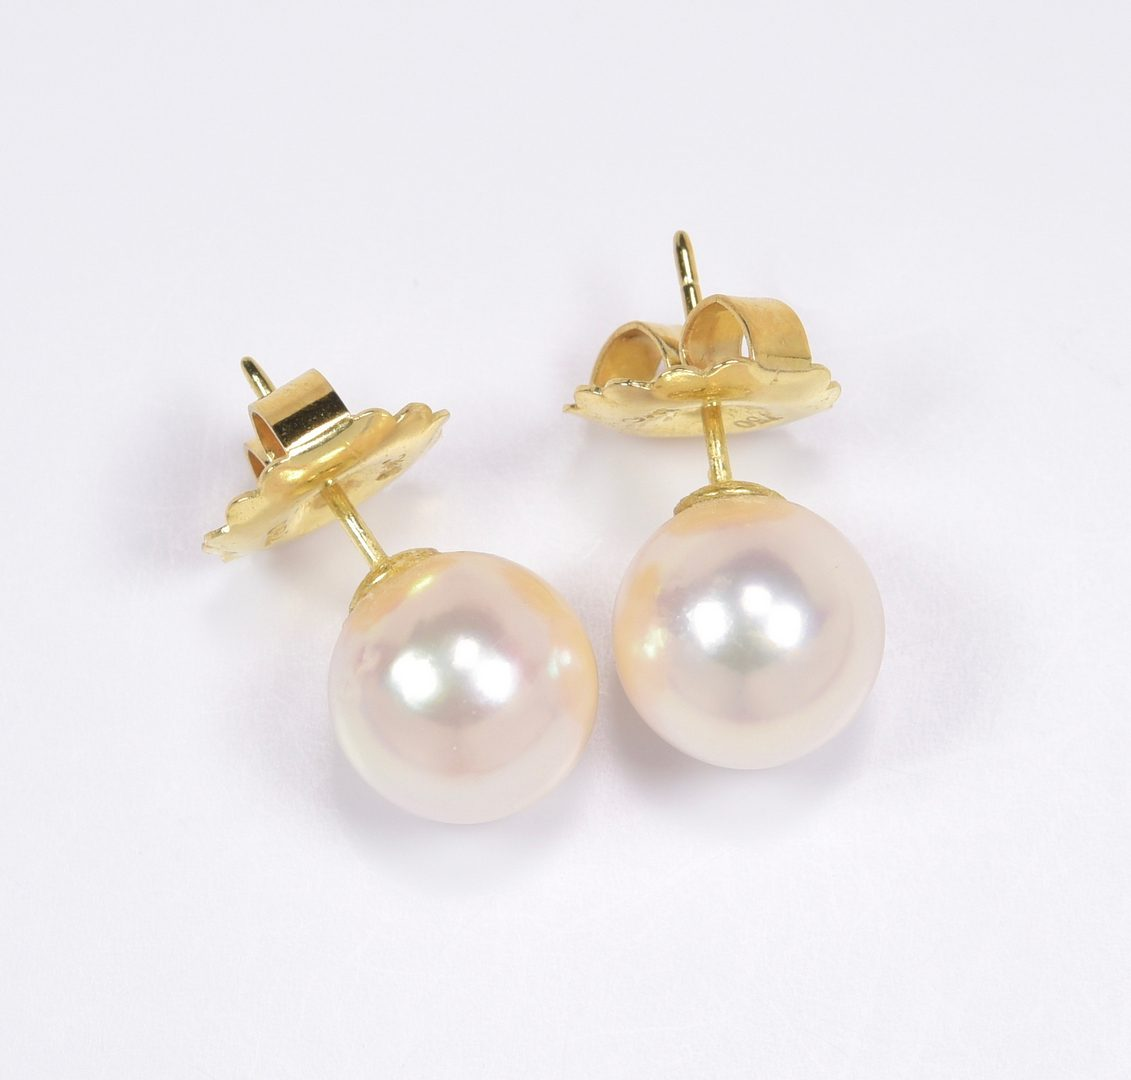 Lot 405: 9.5 x 10mm Pearl Necklace and Earrings